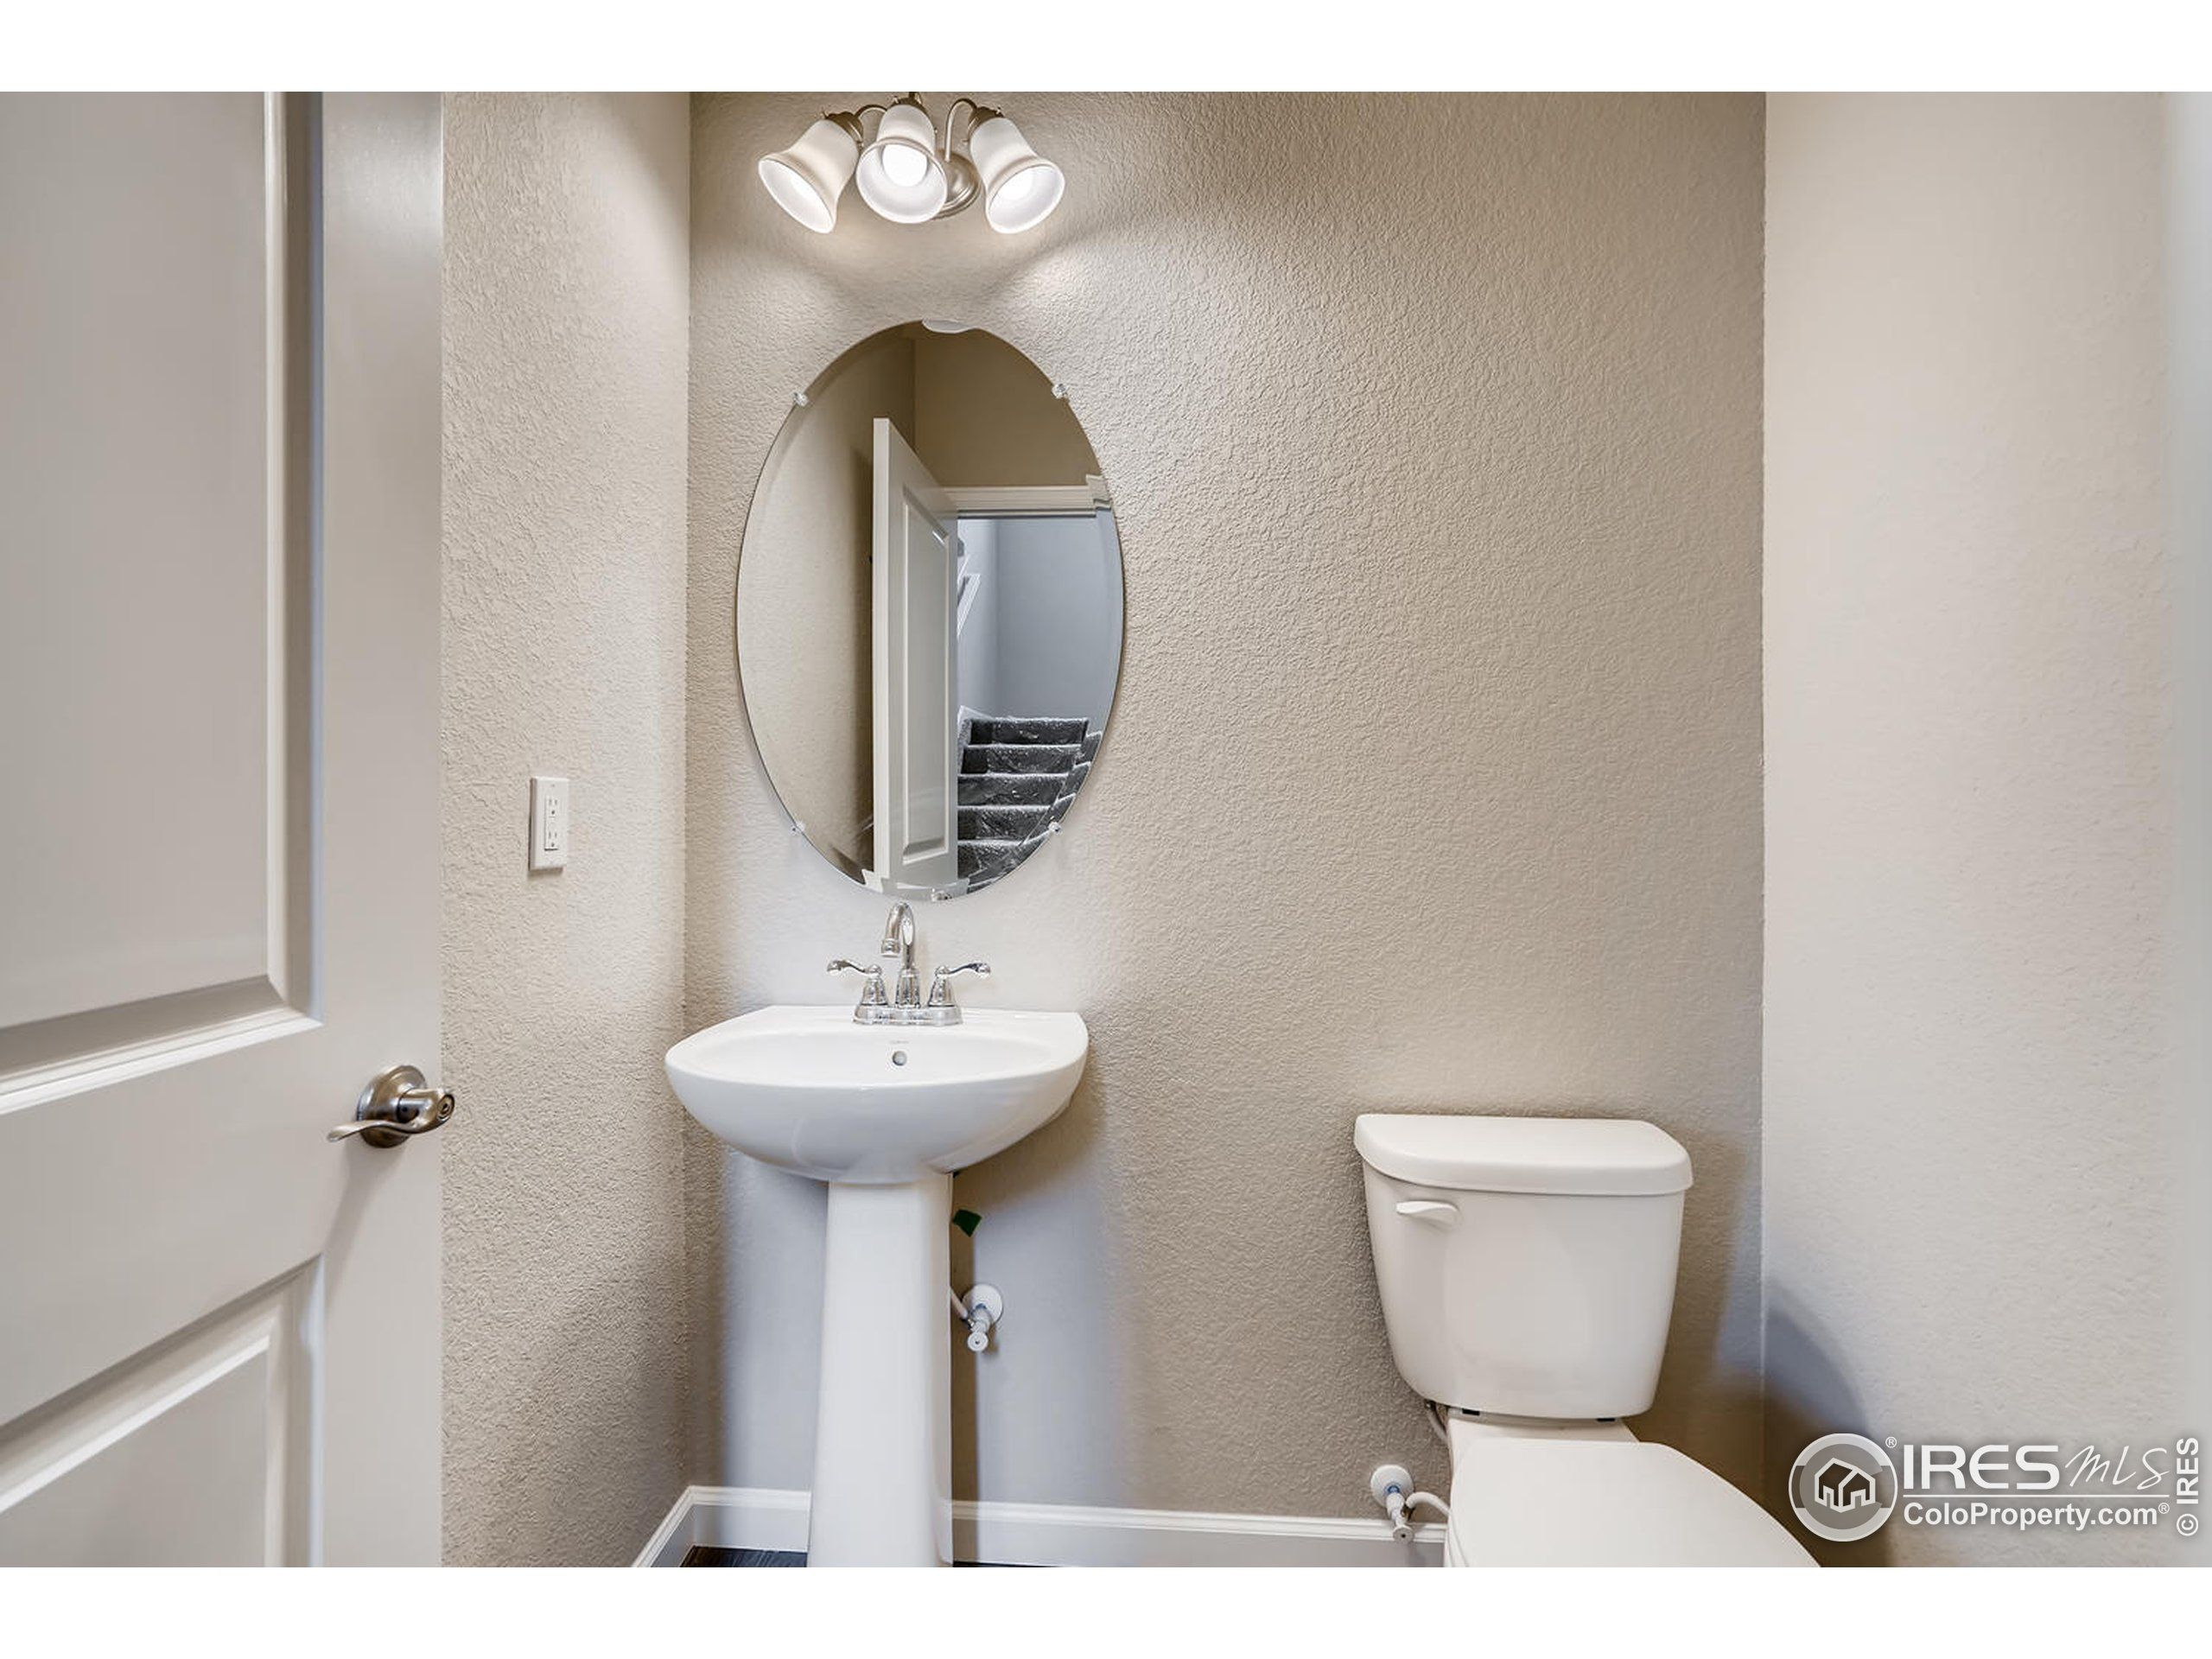 Bathroom featured in the Adderbrooke By Dream Finders Homes in Denver, CO